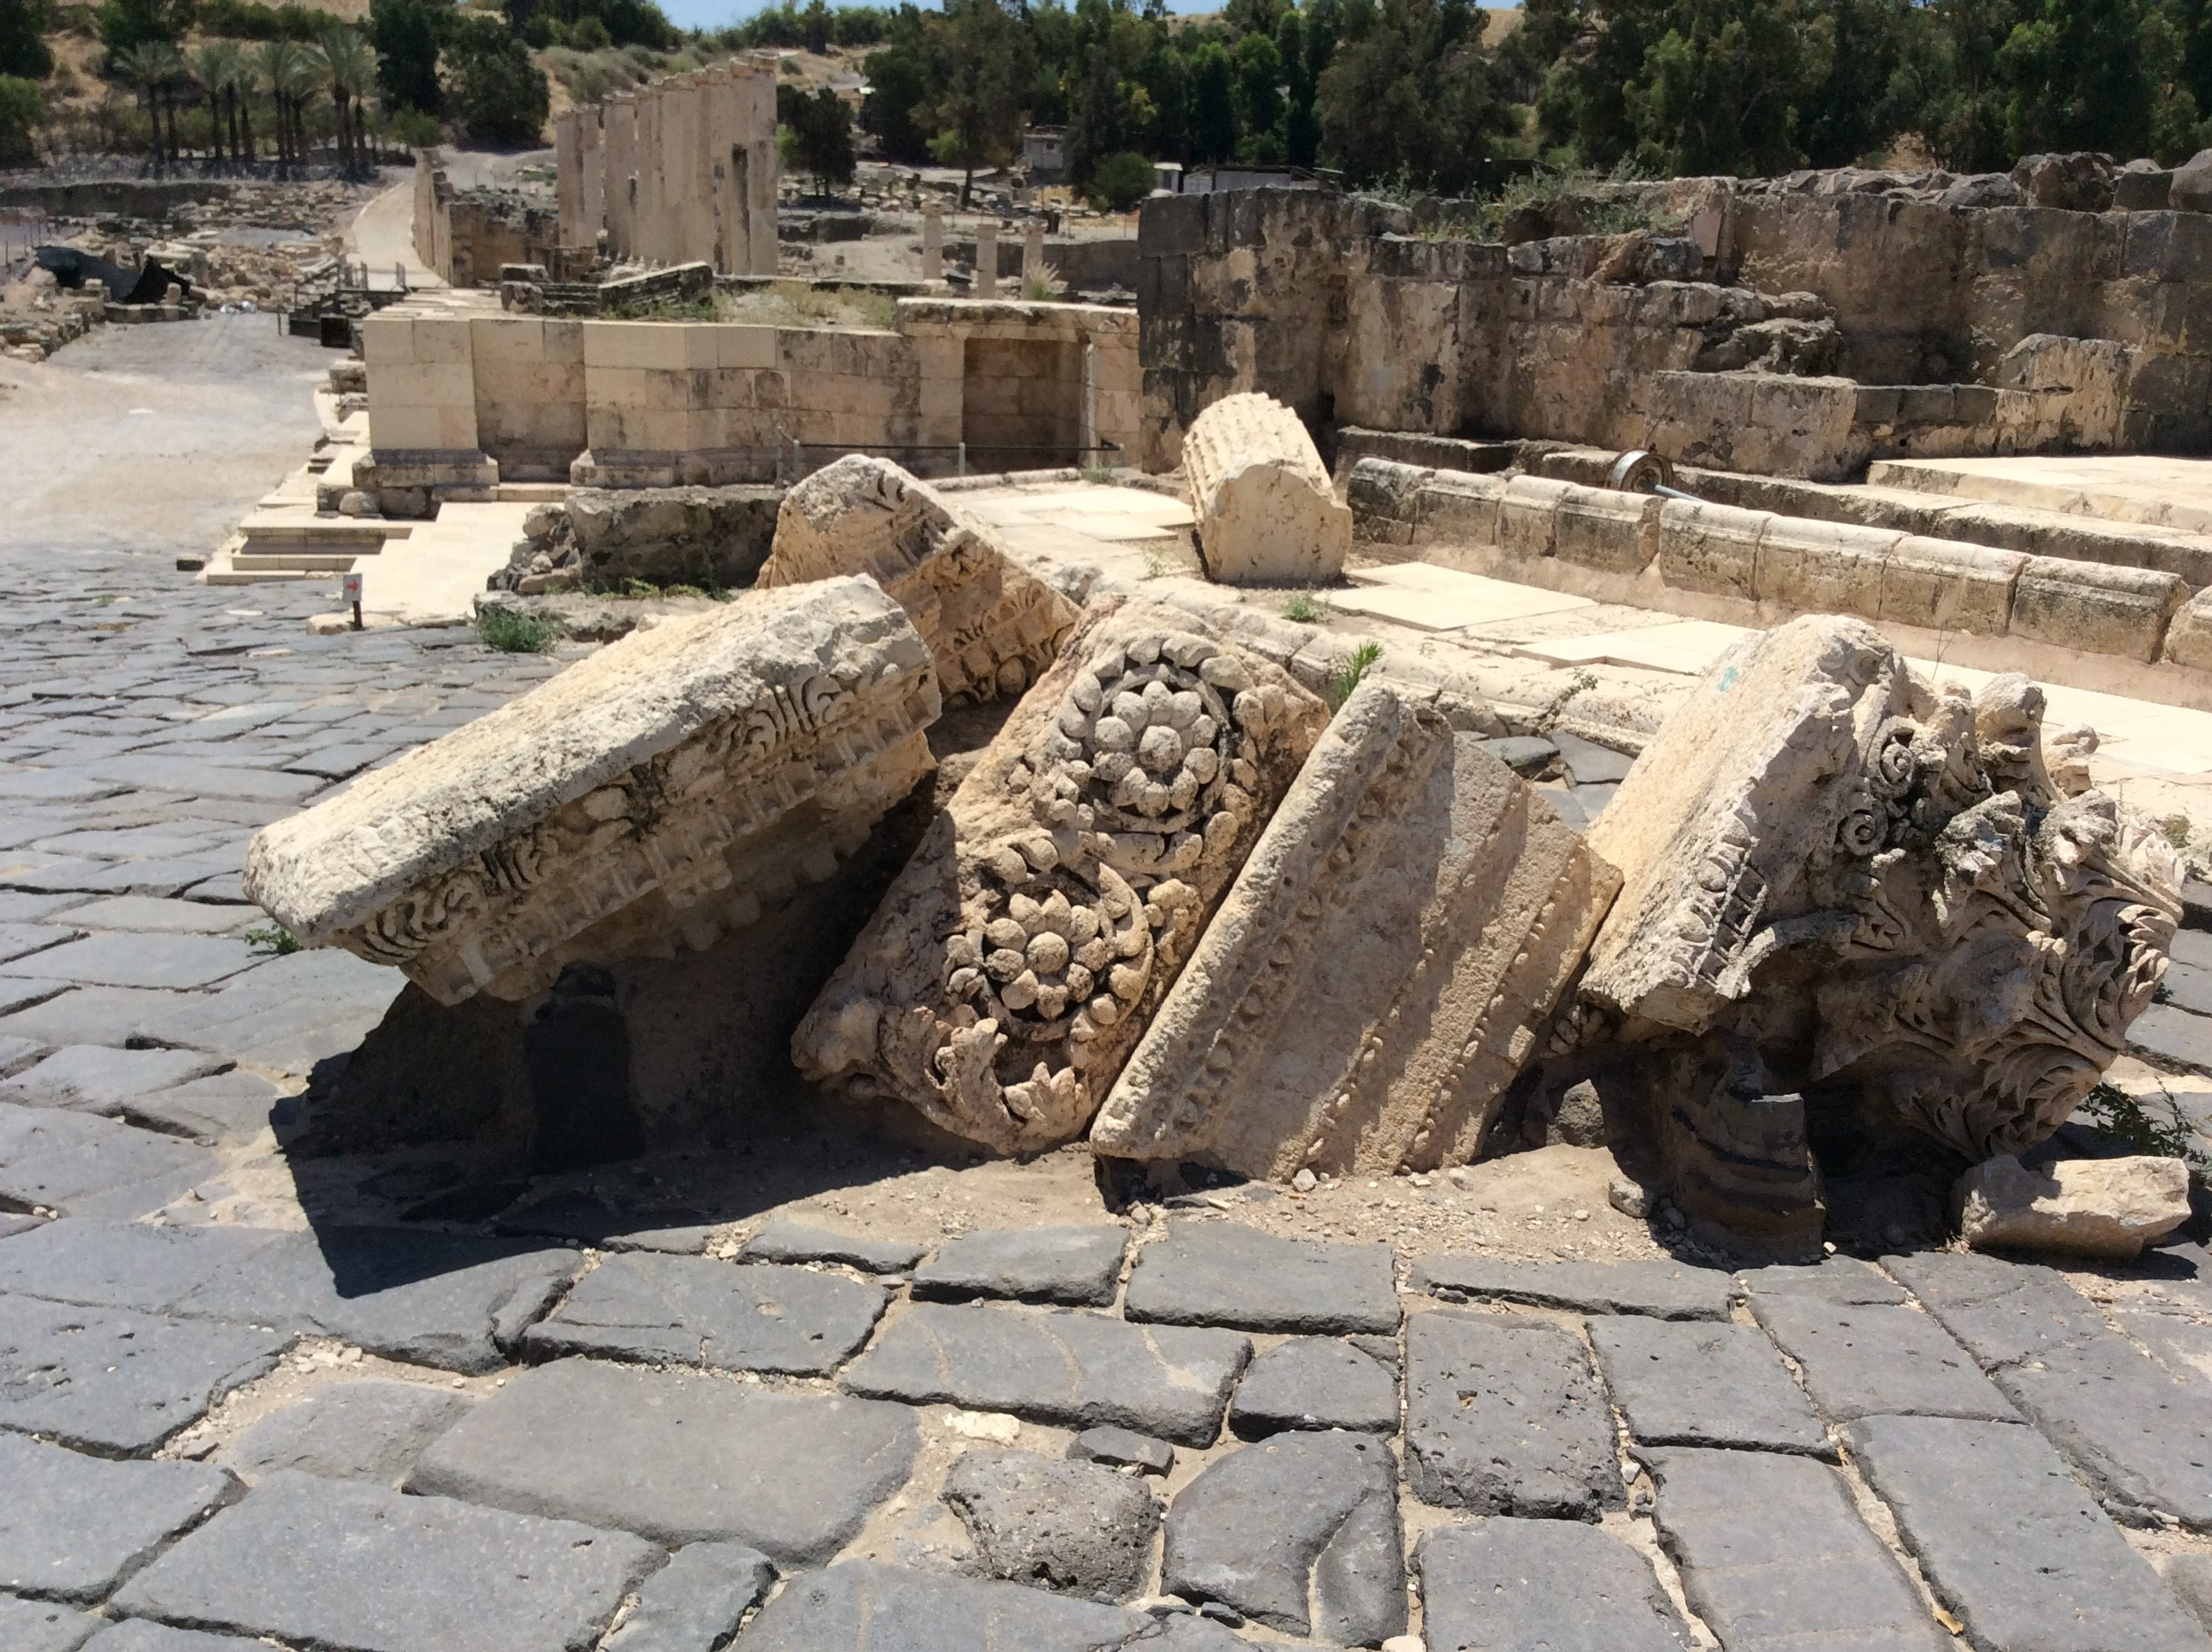 The ruins of Scythopolis (Beit Shean). A major earthquake in 749 A.D. toppled this once magnificent city with devastating consequences.